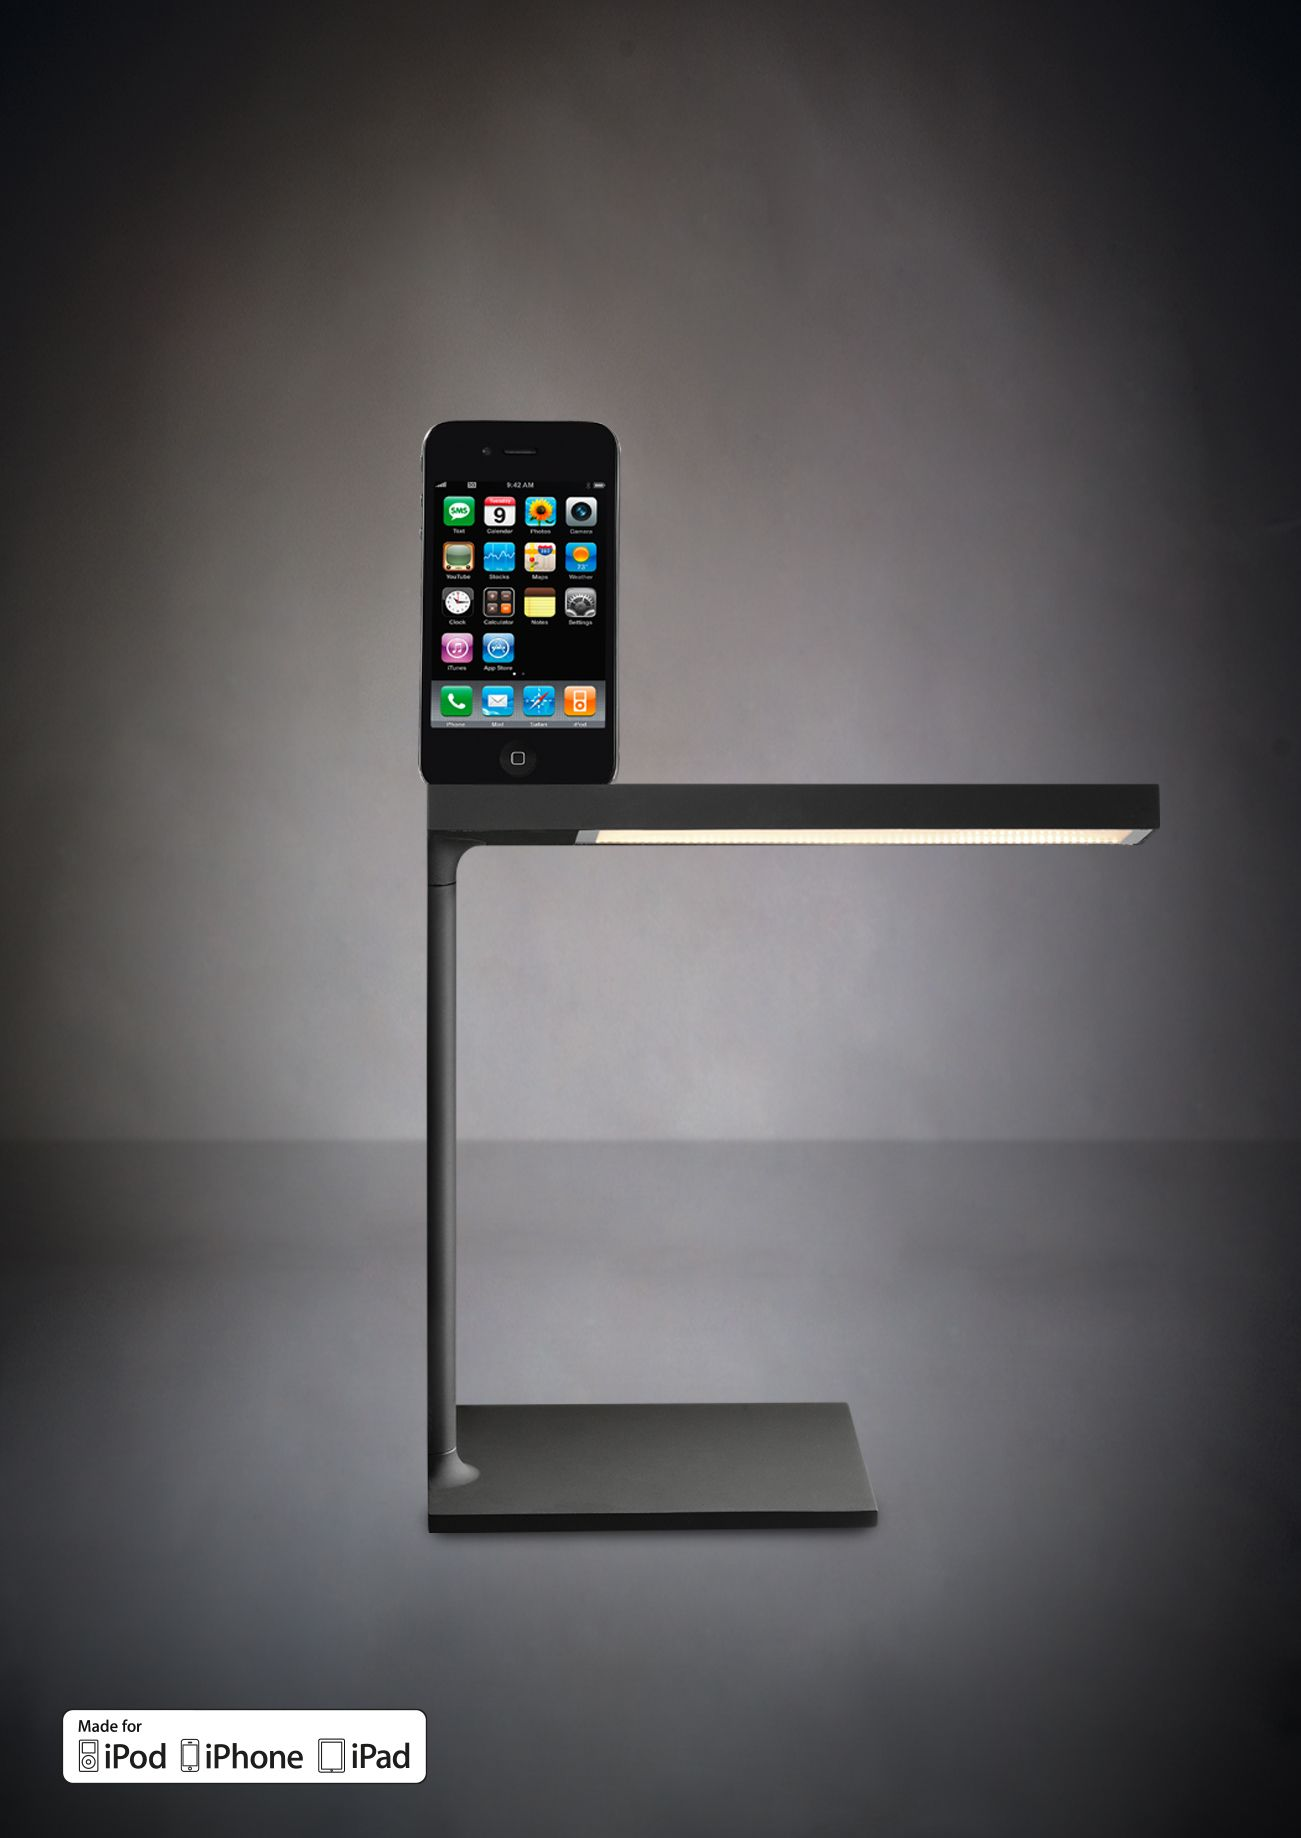 The D'E-Light Table Lamp - A sleek LED desk lamp and docking station for iPad/iPhone in one from Philippe Starck and Flos.